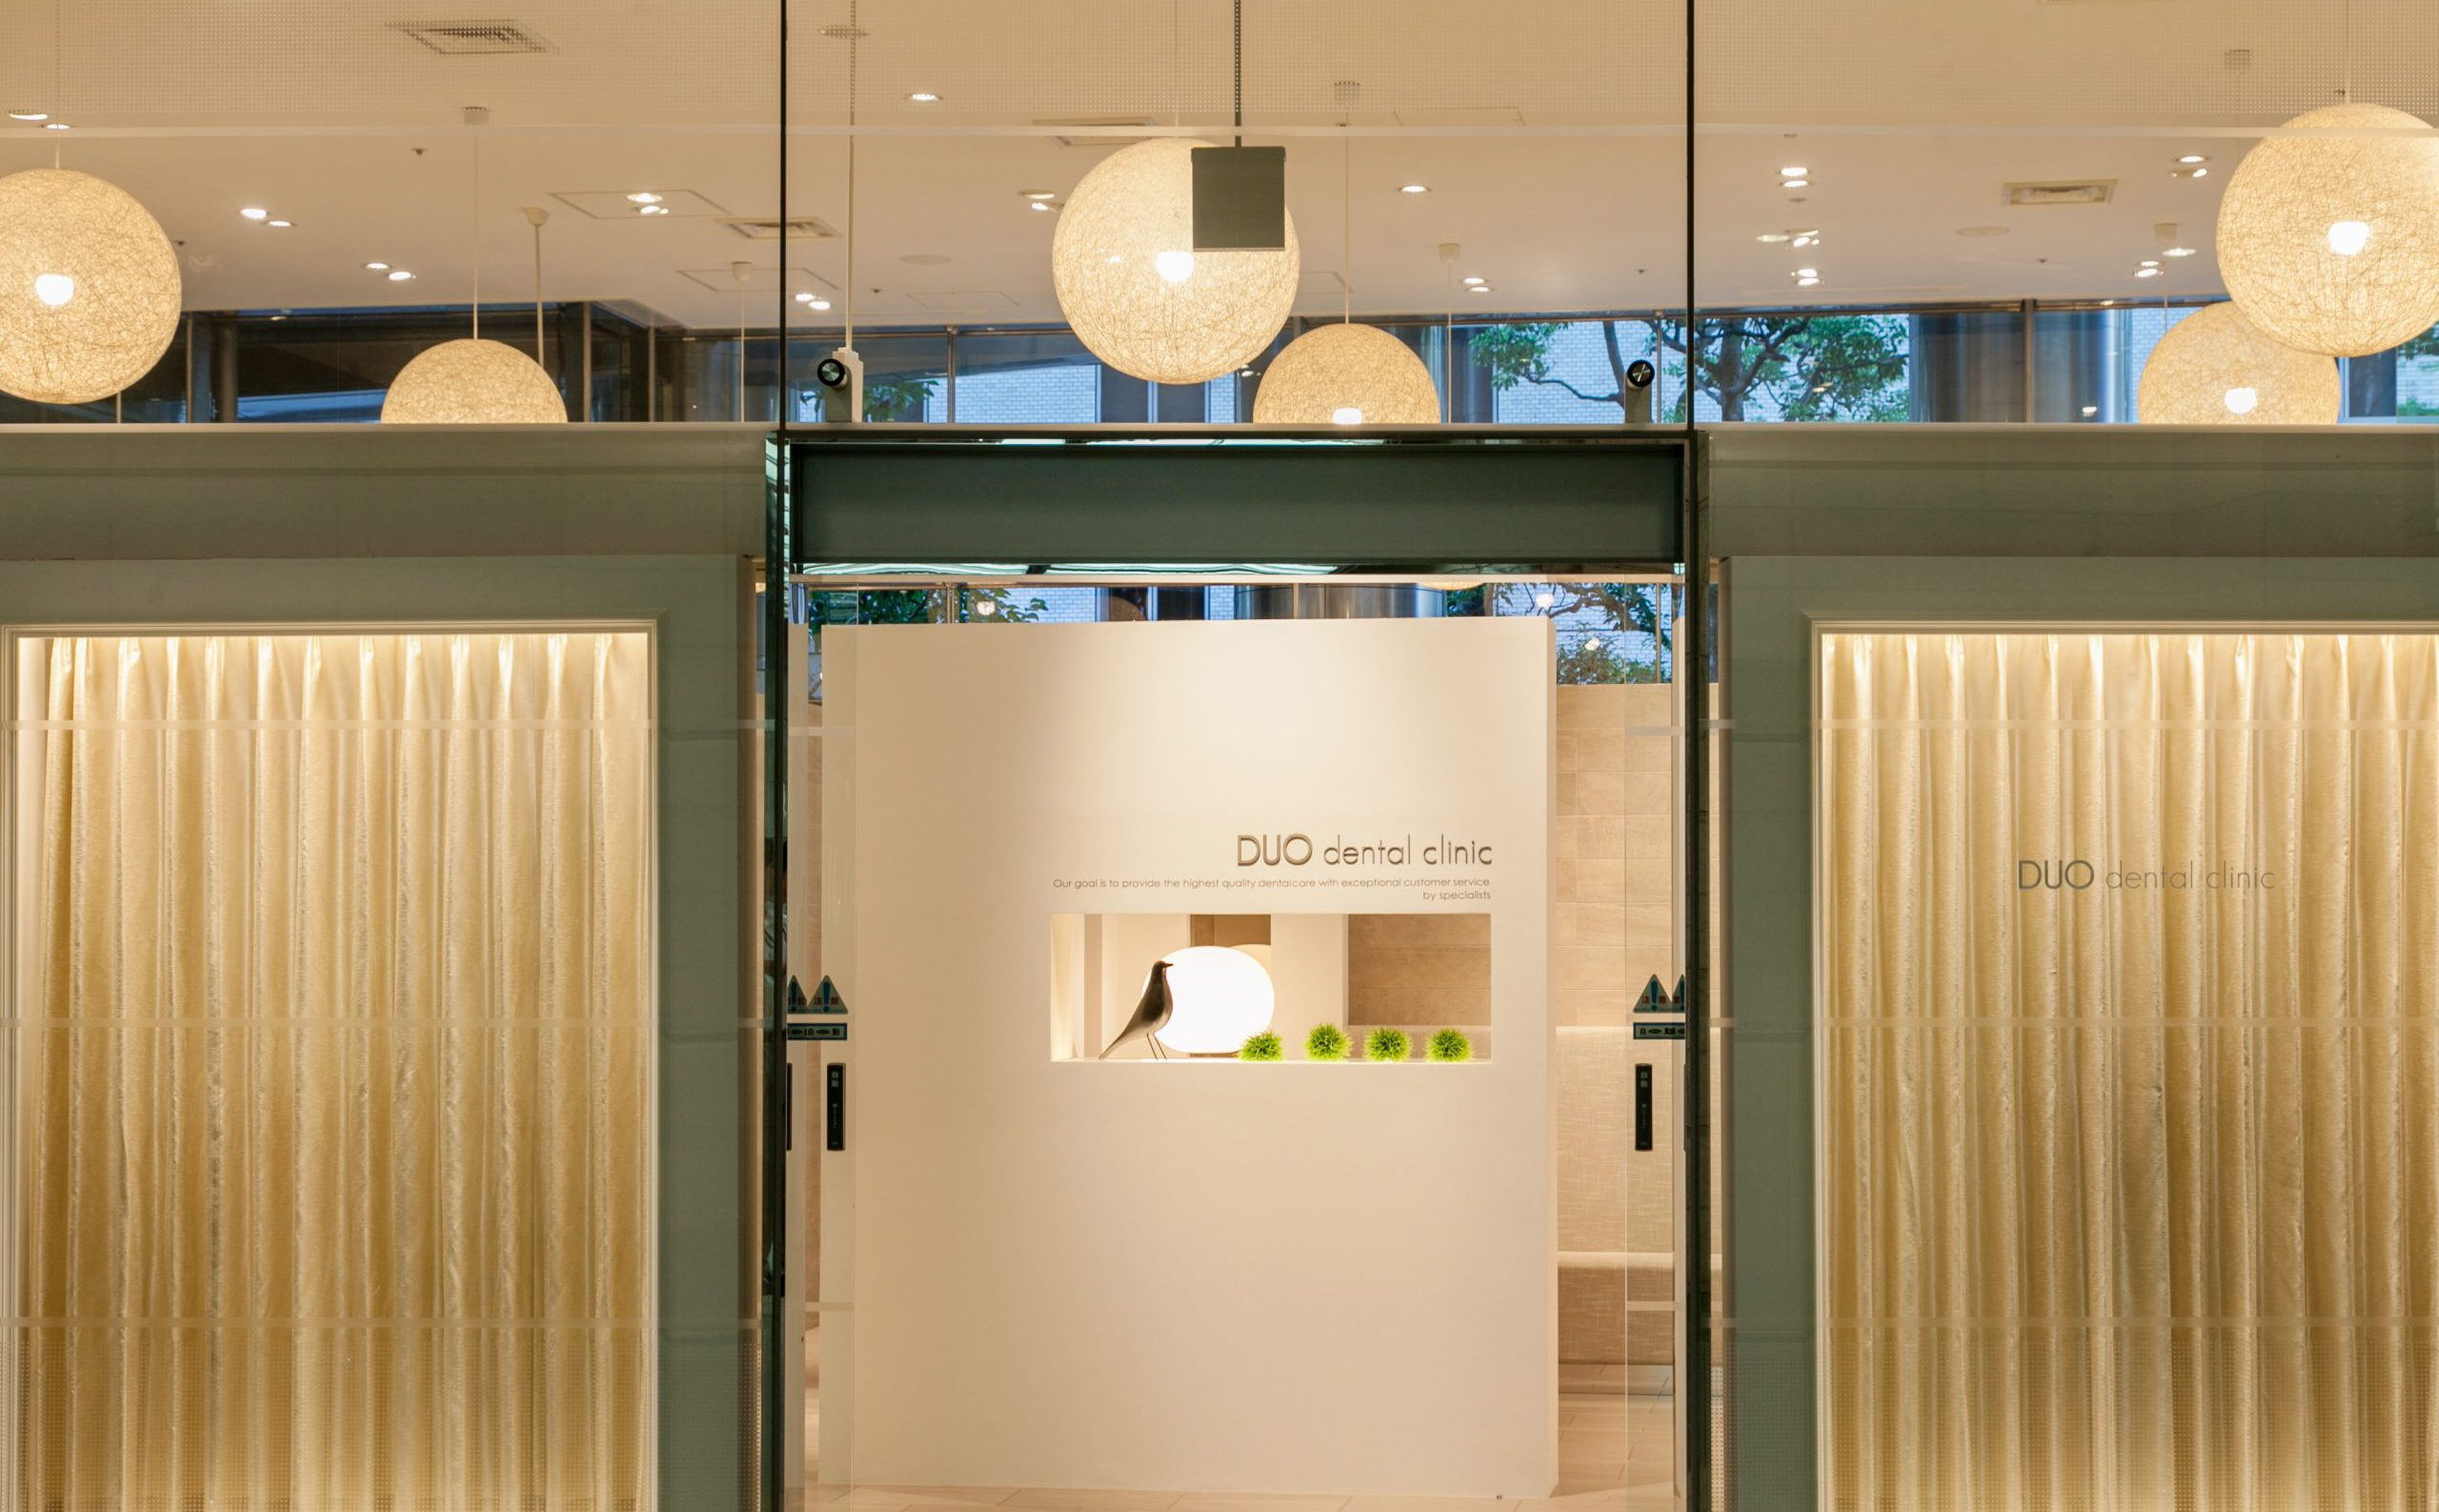 DUO specialists dental clinic